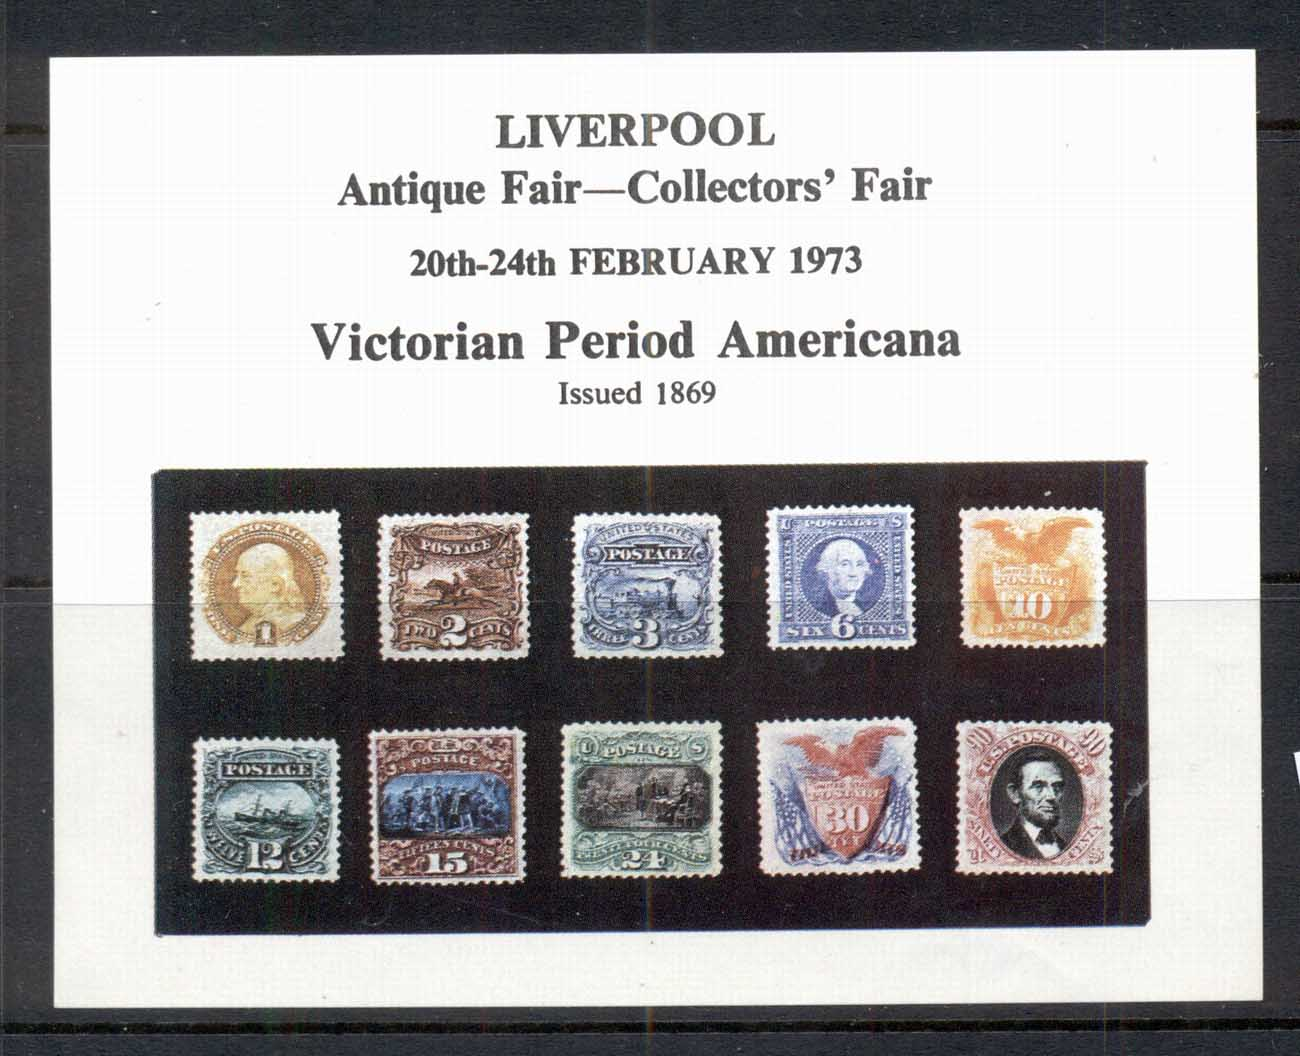 GB-USA 1973 Liverpool (UK)Antique Fair Pictorials Souvenir MS